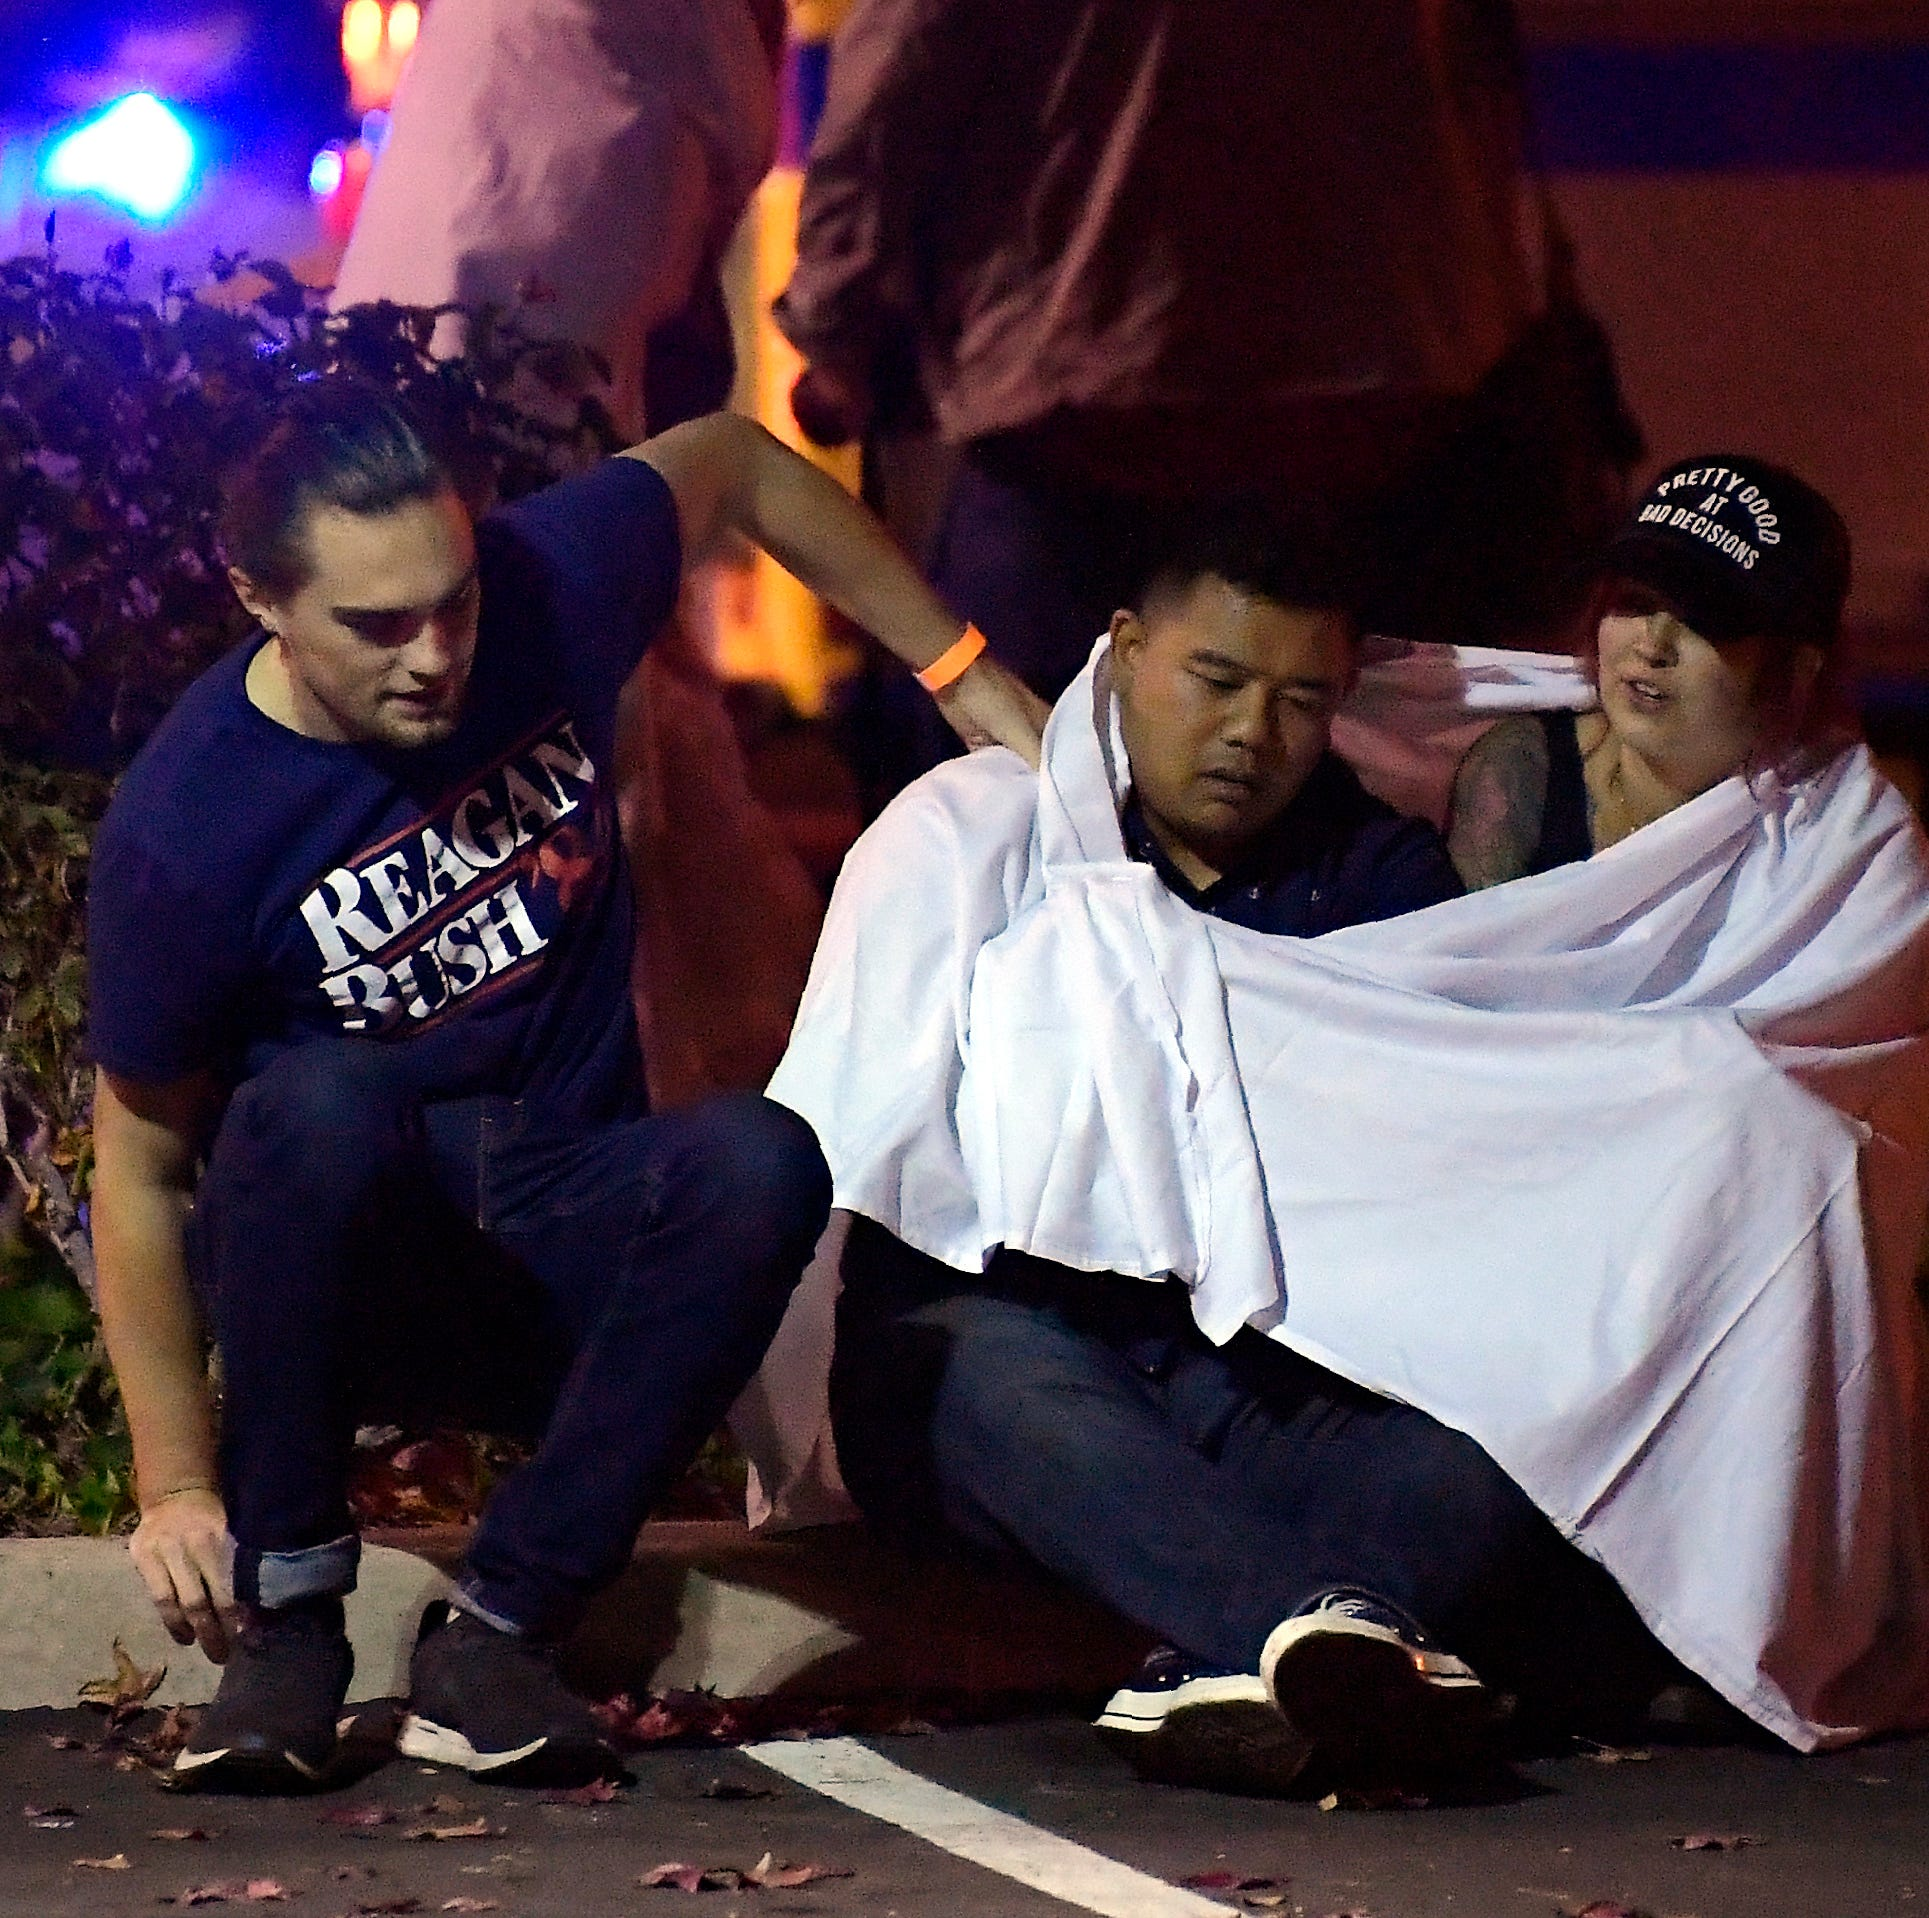 In the wake of Borderline tragedy, expert says mass shootings don't have to be new normal